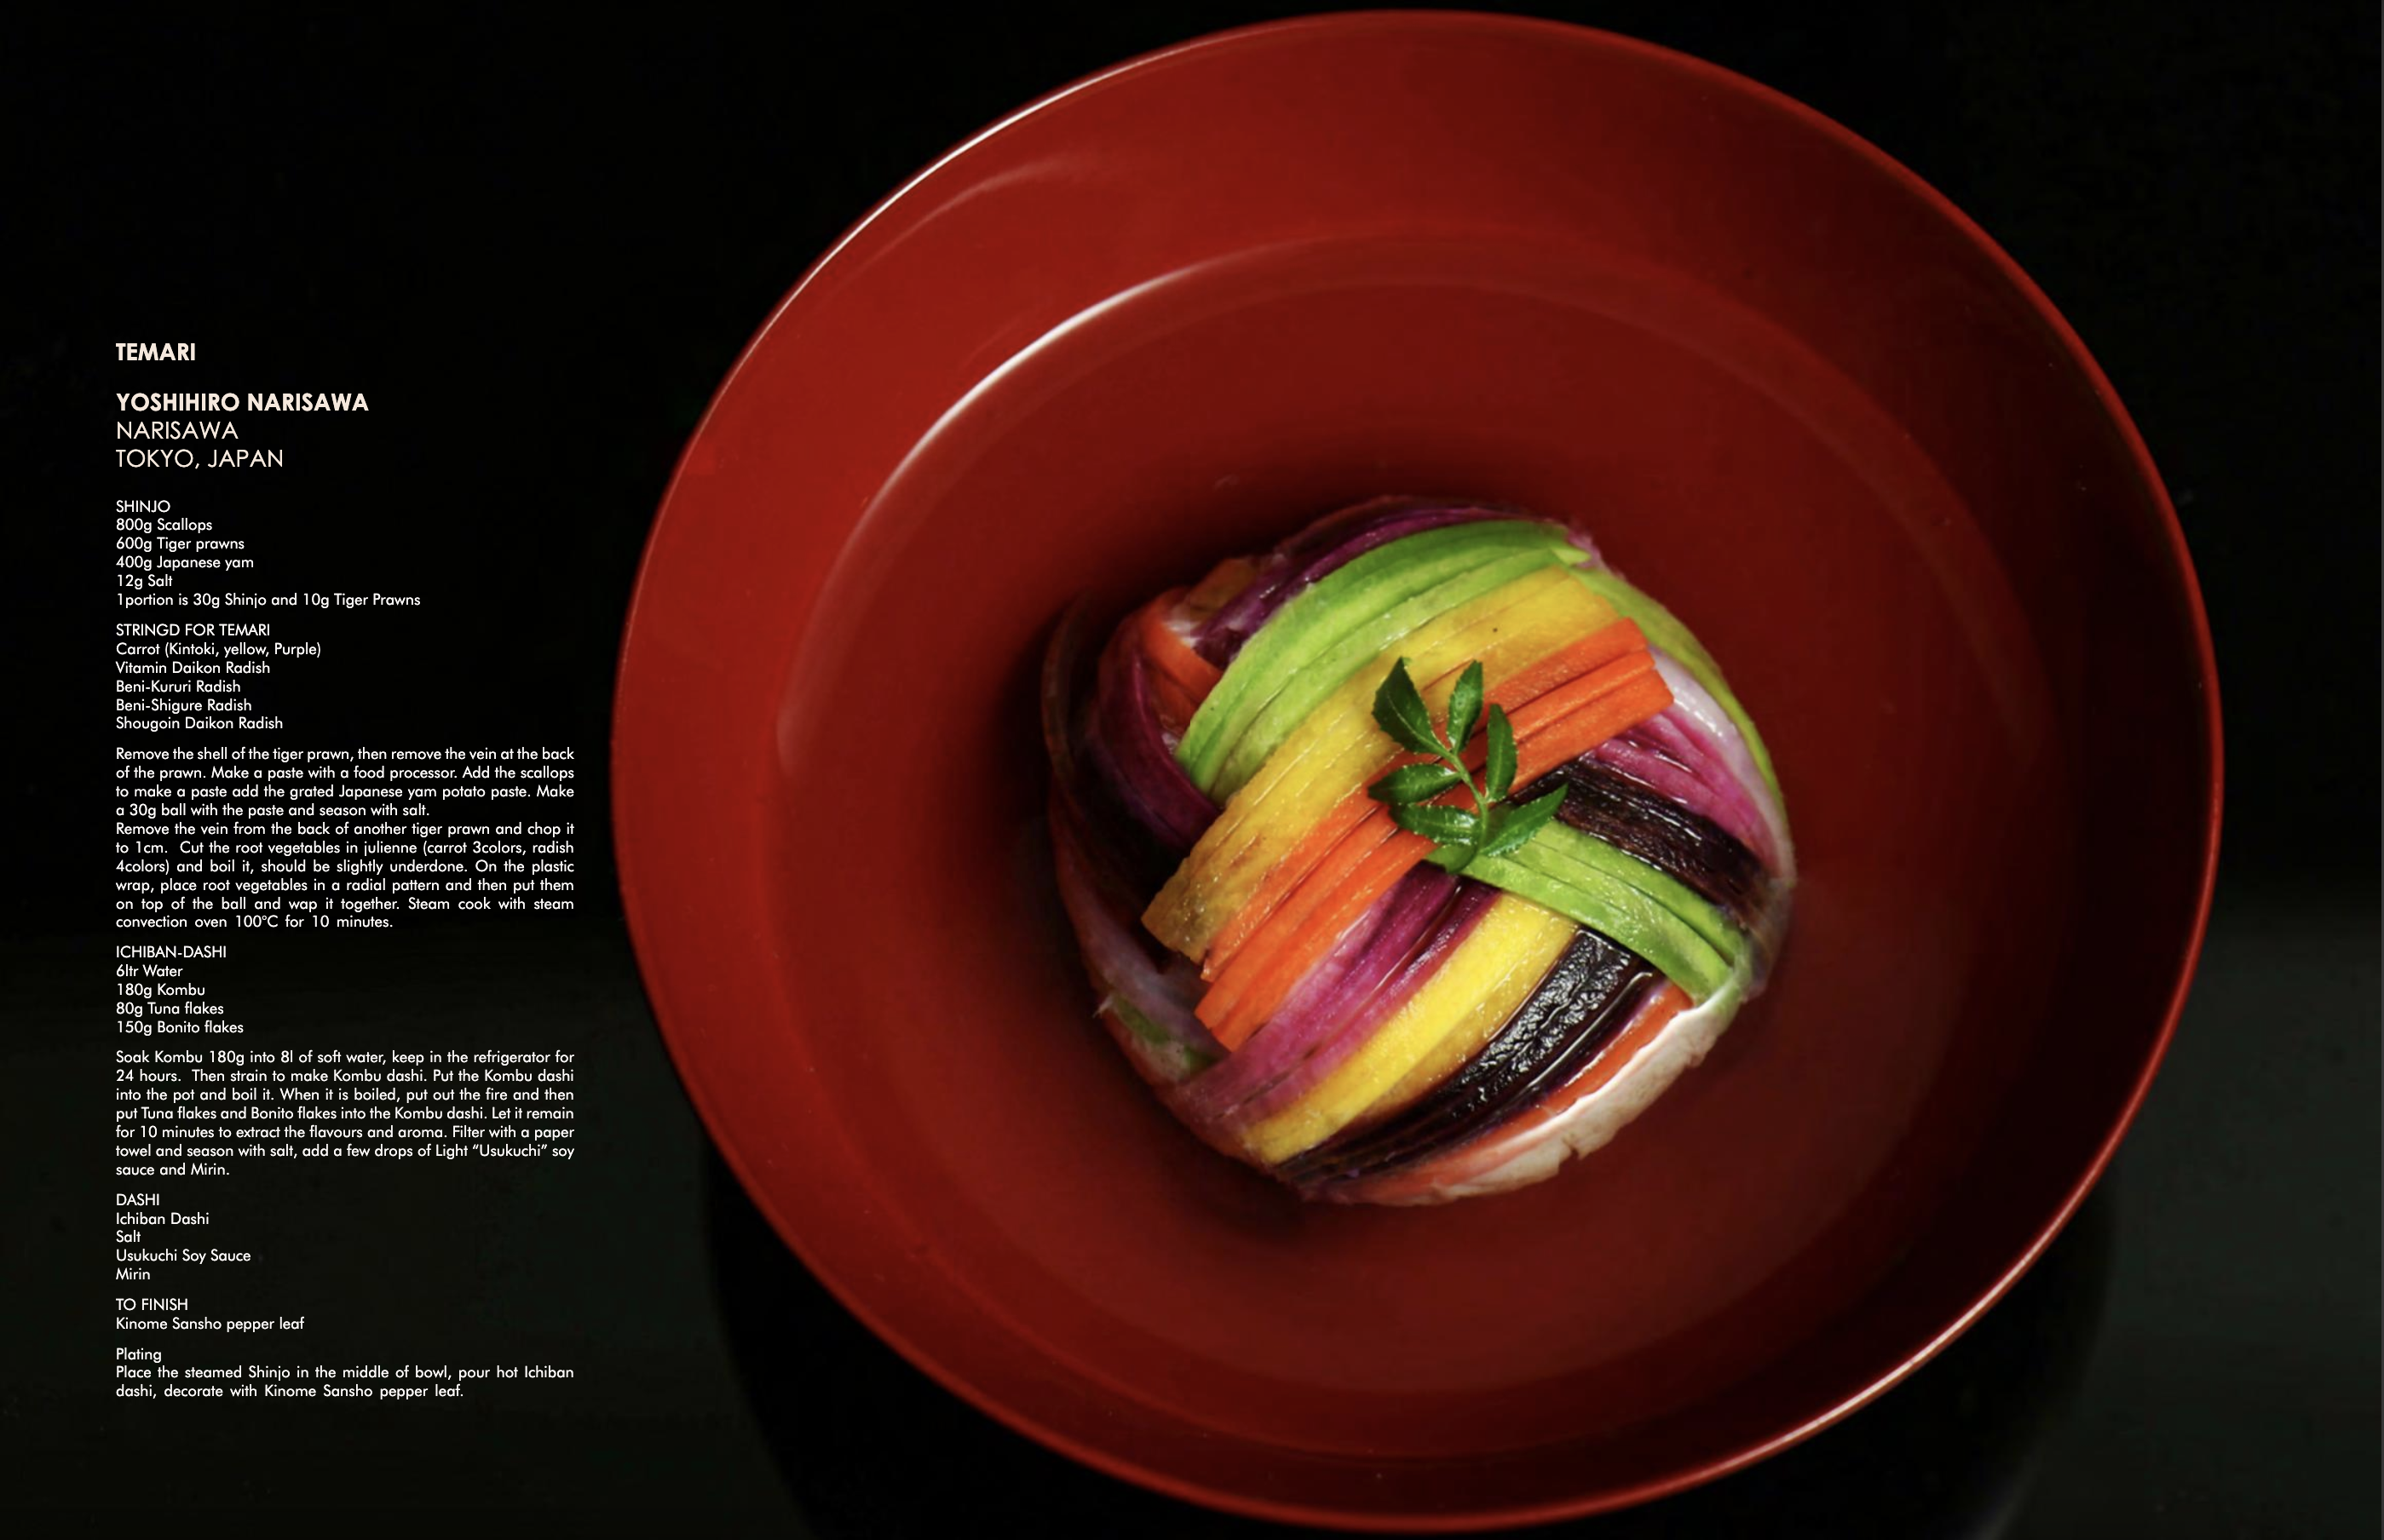 Download more than 100 recipes from the world's top restaurants, including Tokyo's Narisawa